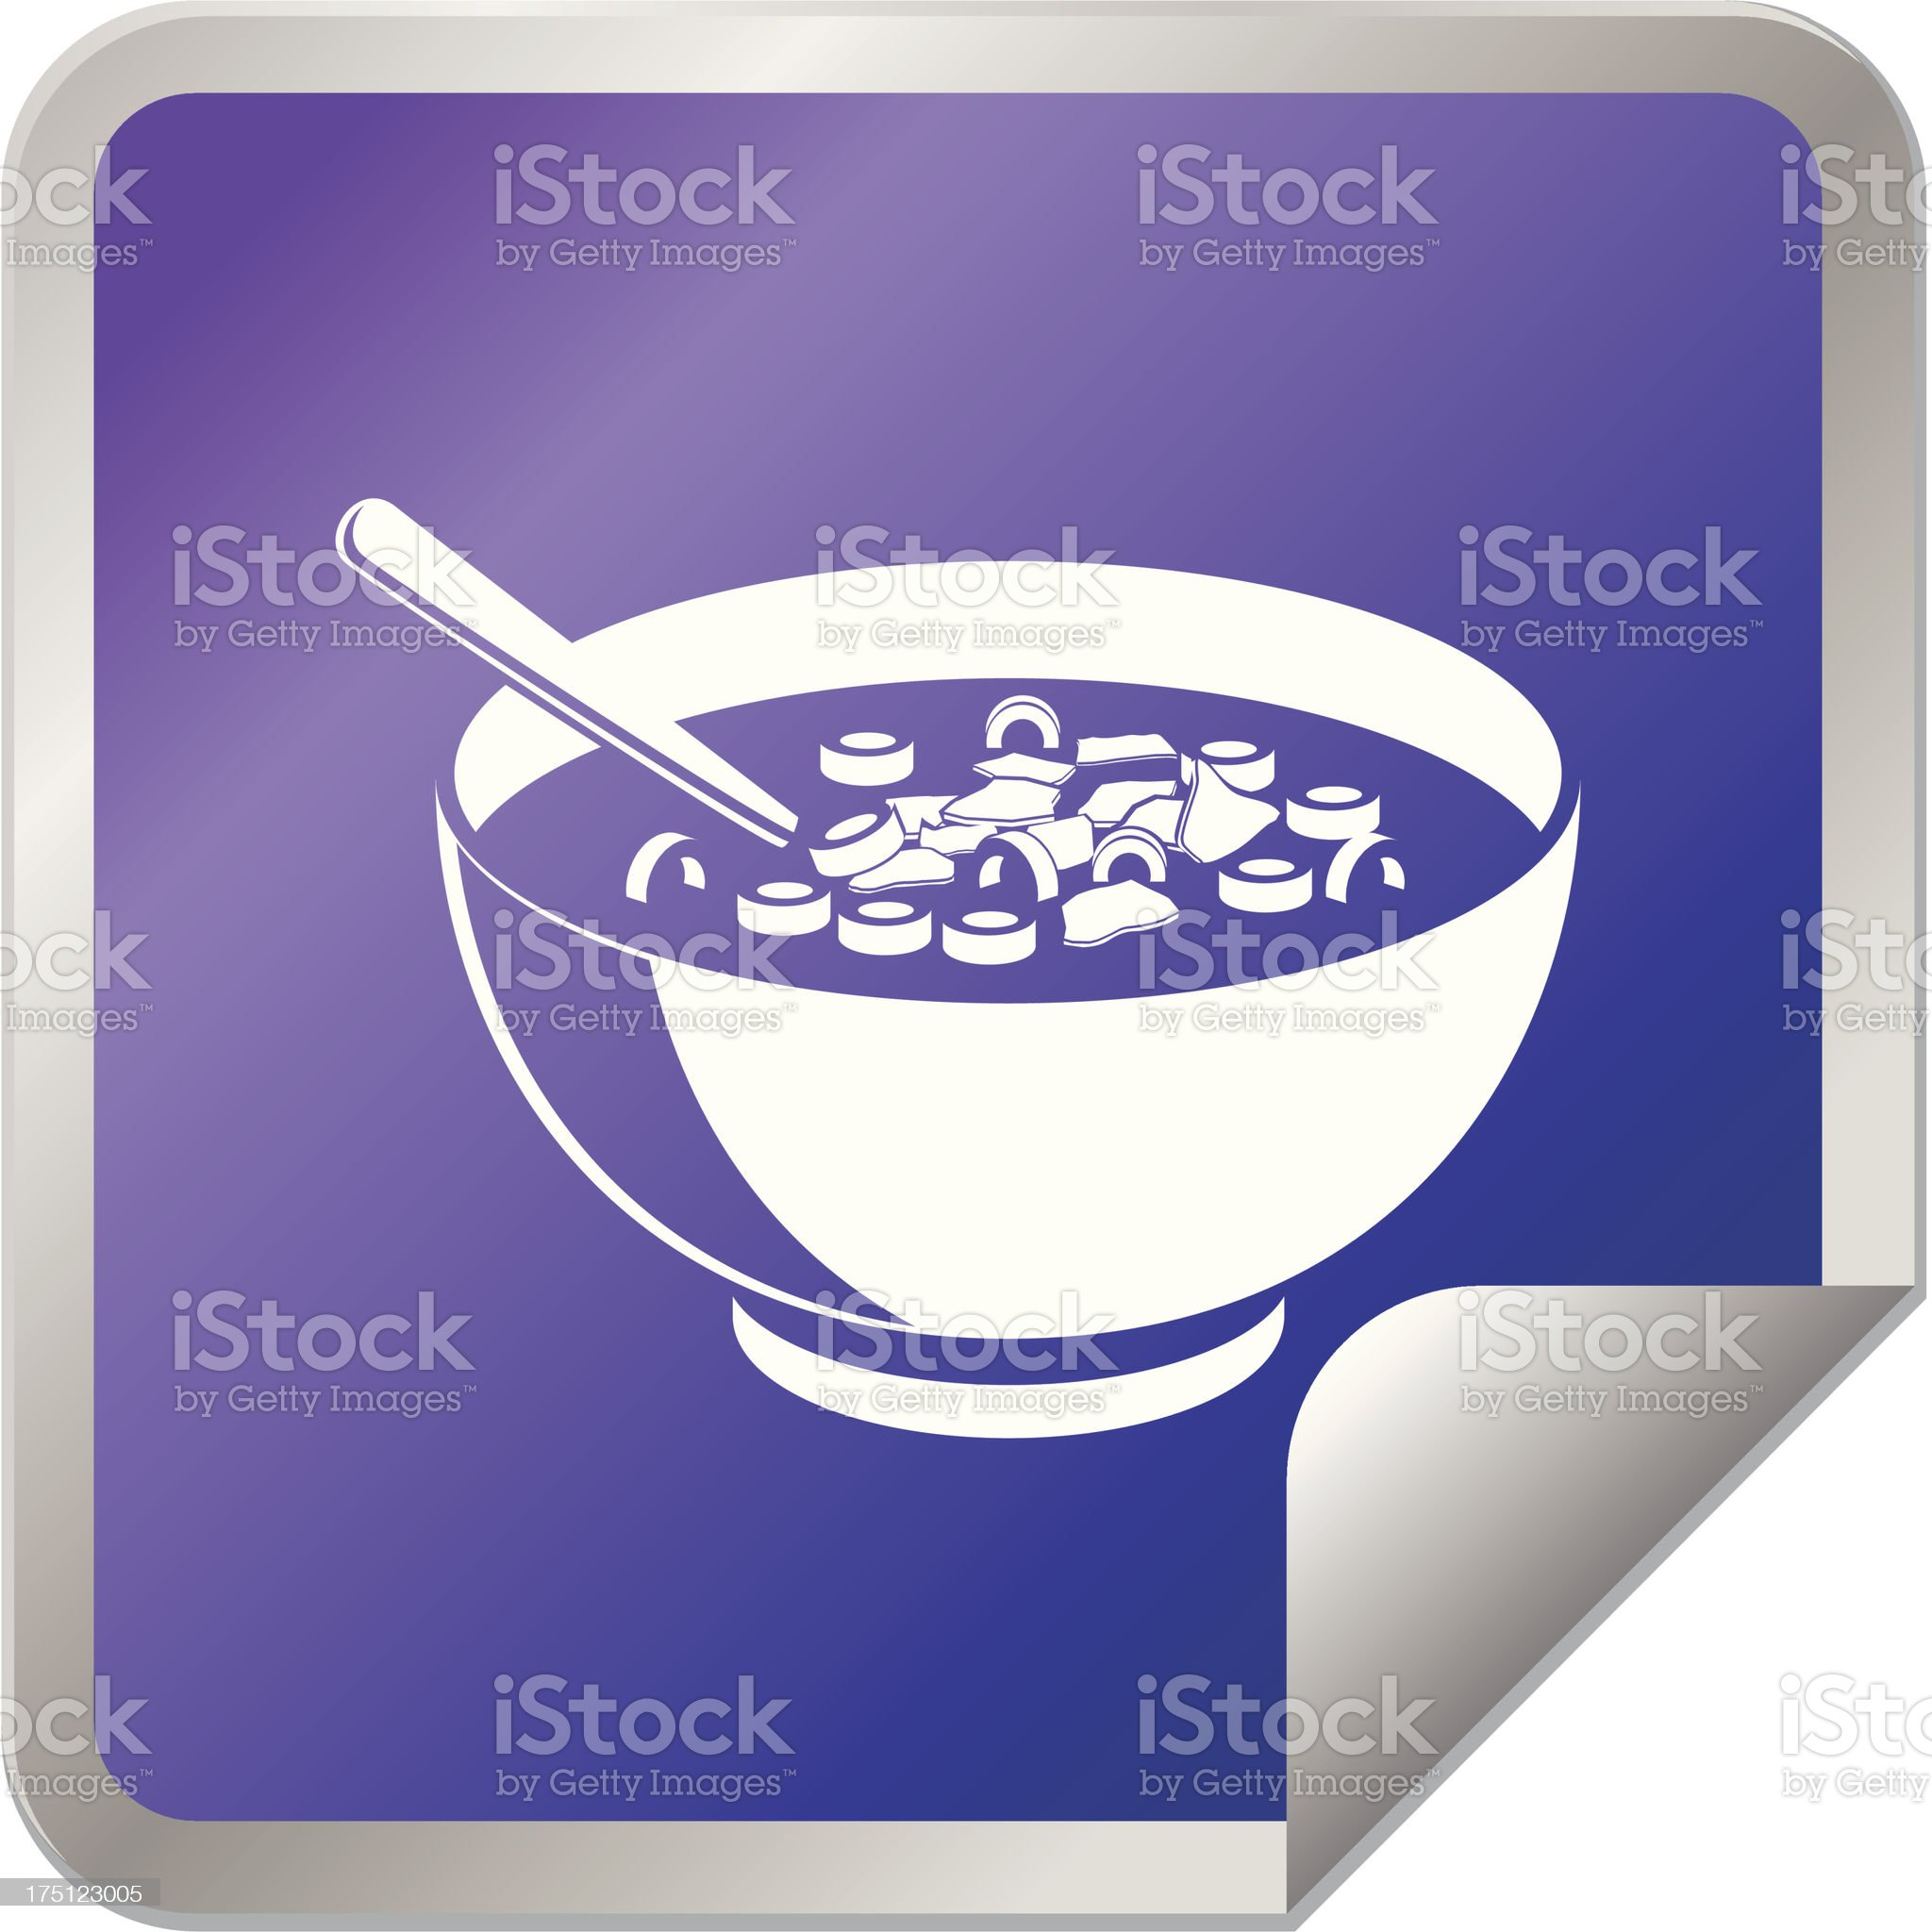 Bowl of Cereal sticker design royalty-free stock vector art